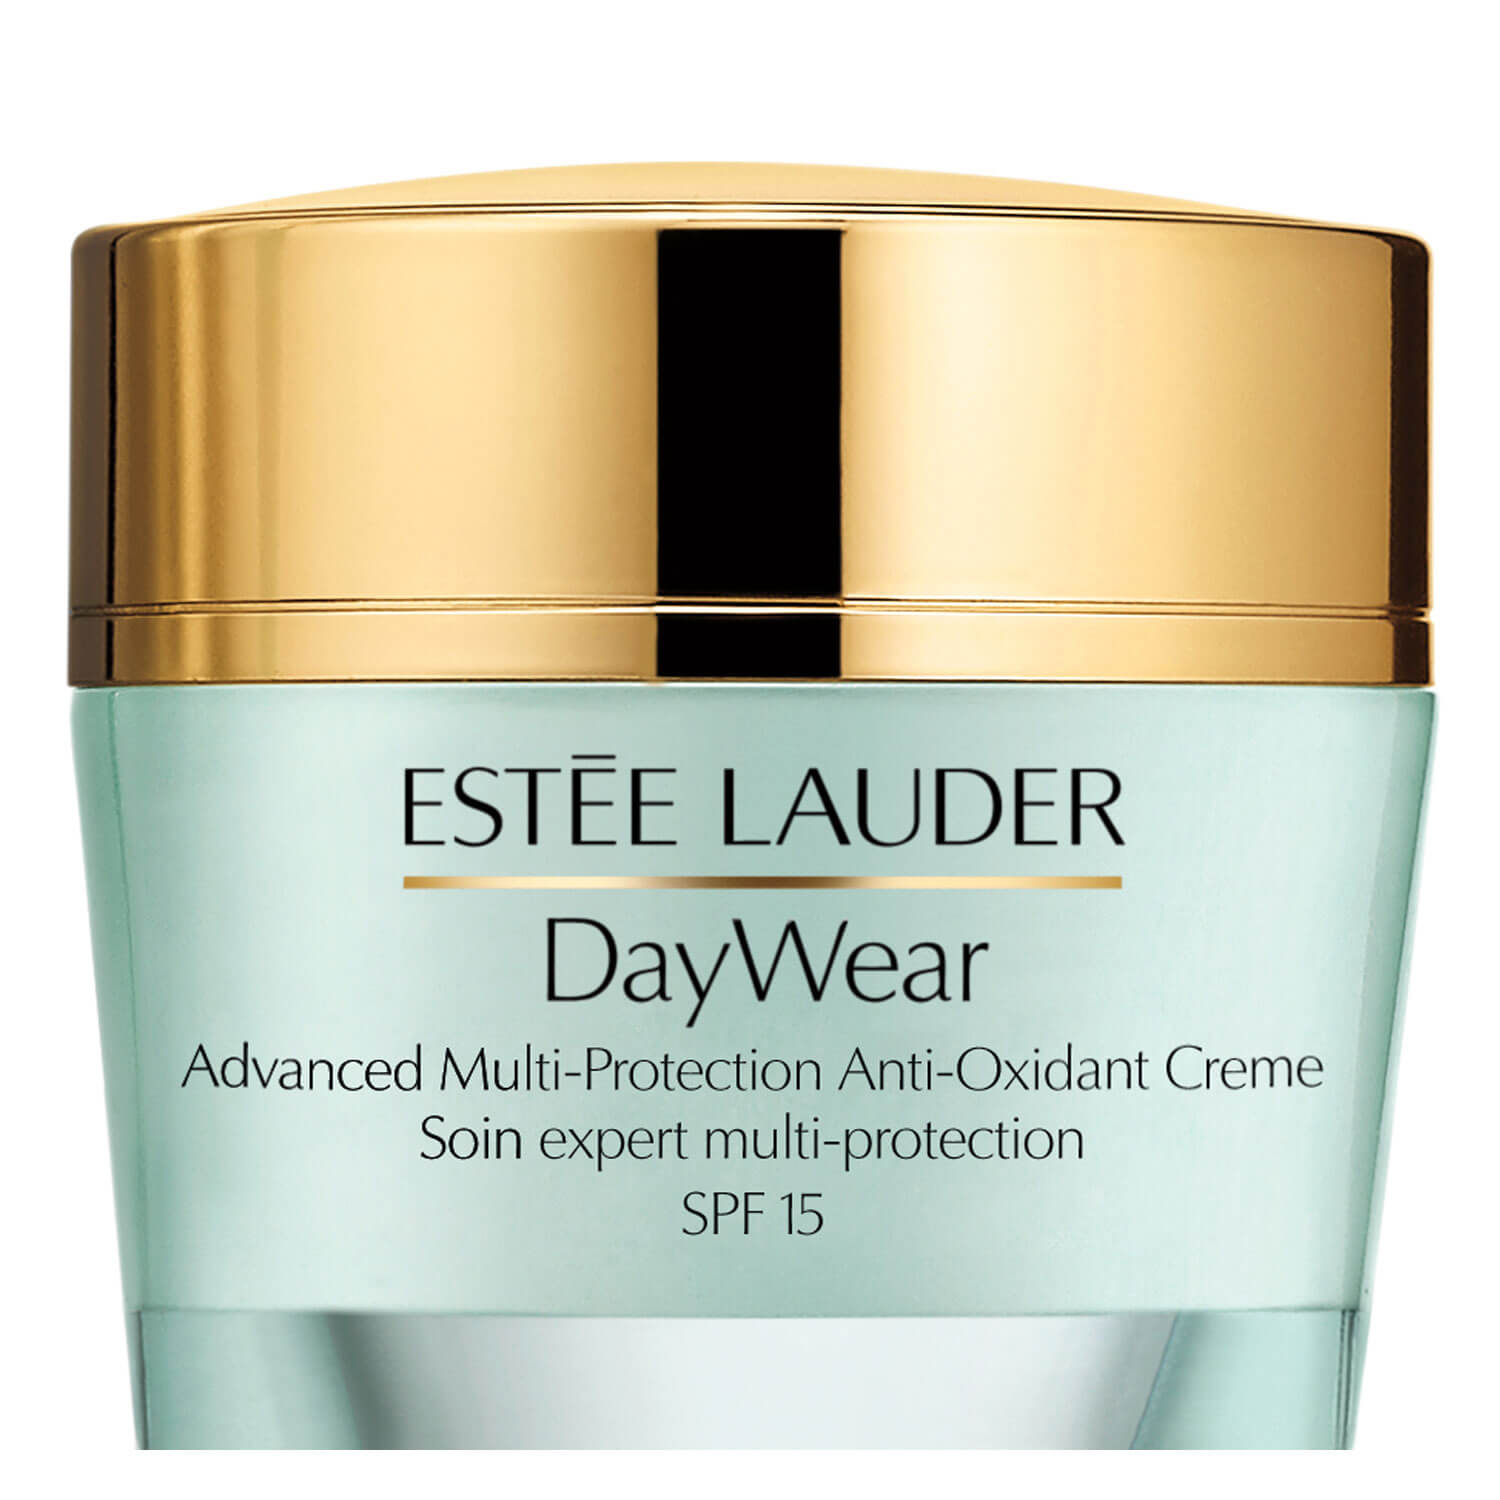 DayWear - Advanced Multi-Protection Anti-Oxidant Creme SPF15 Normal/Combination Skin